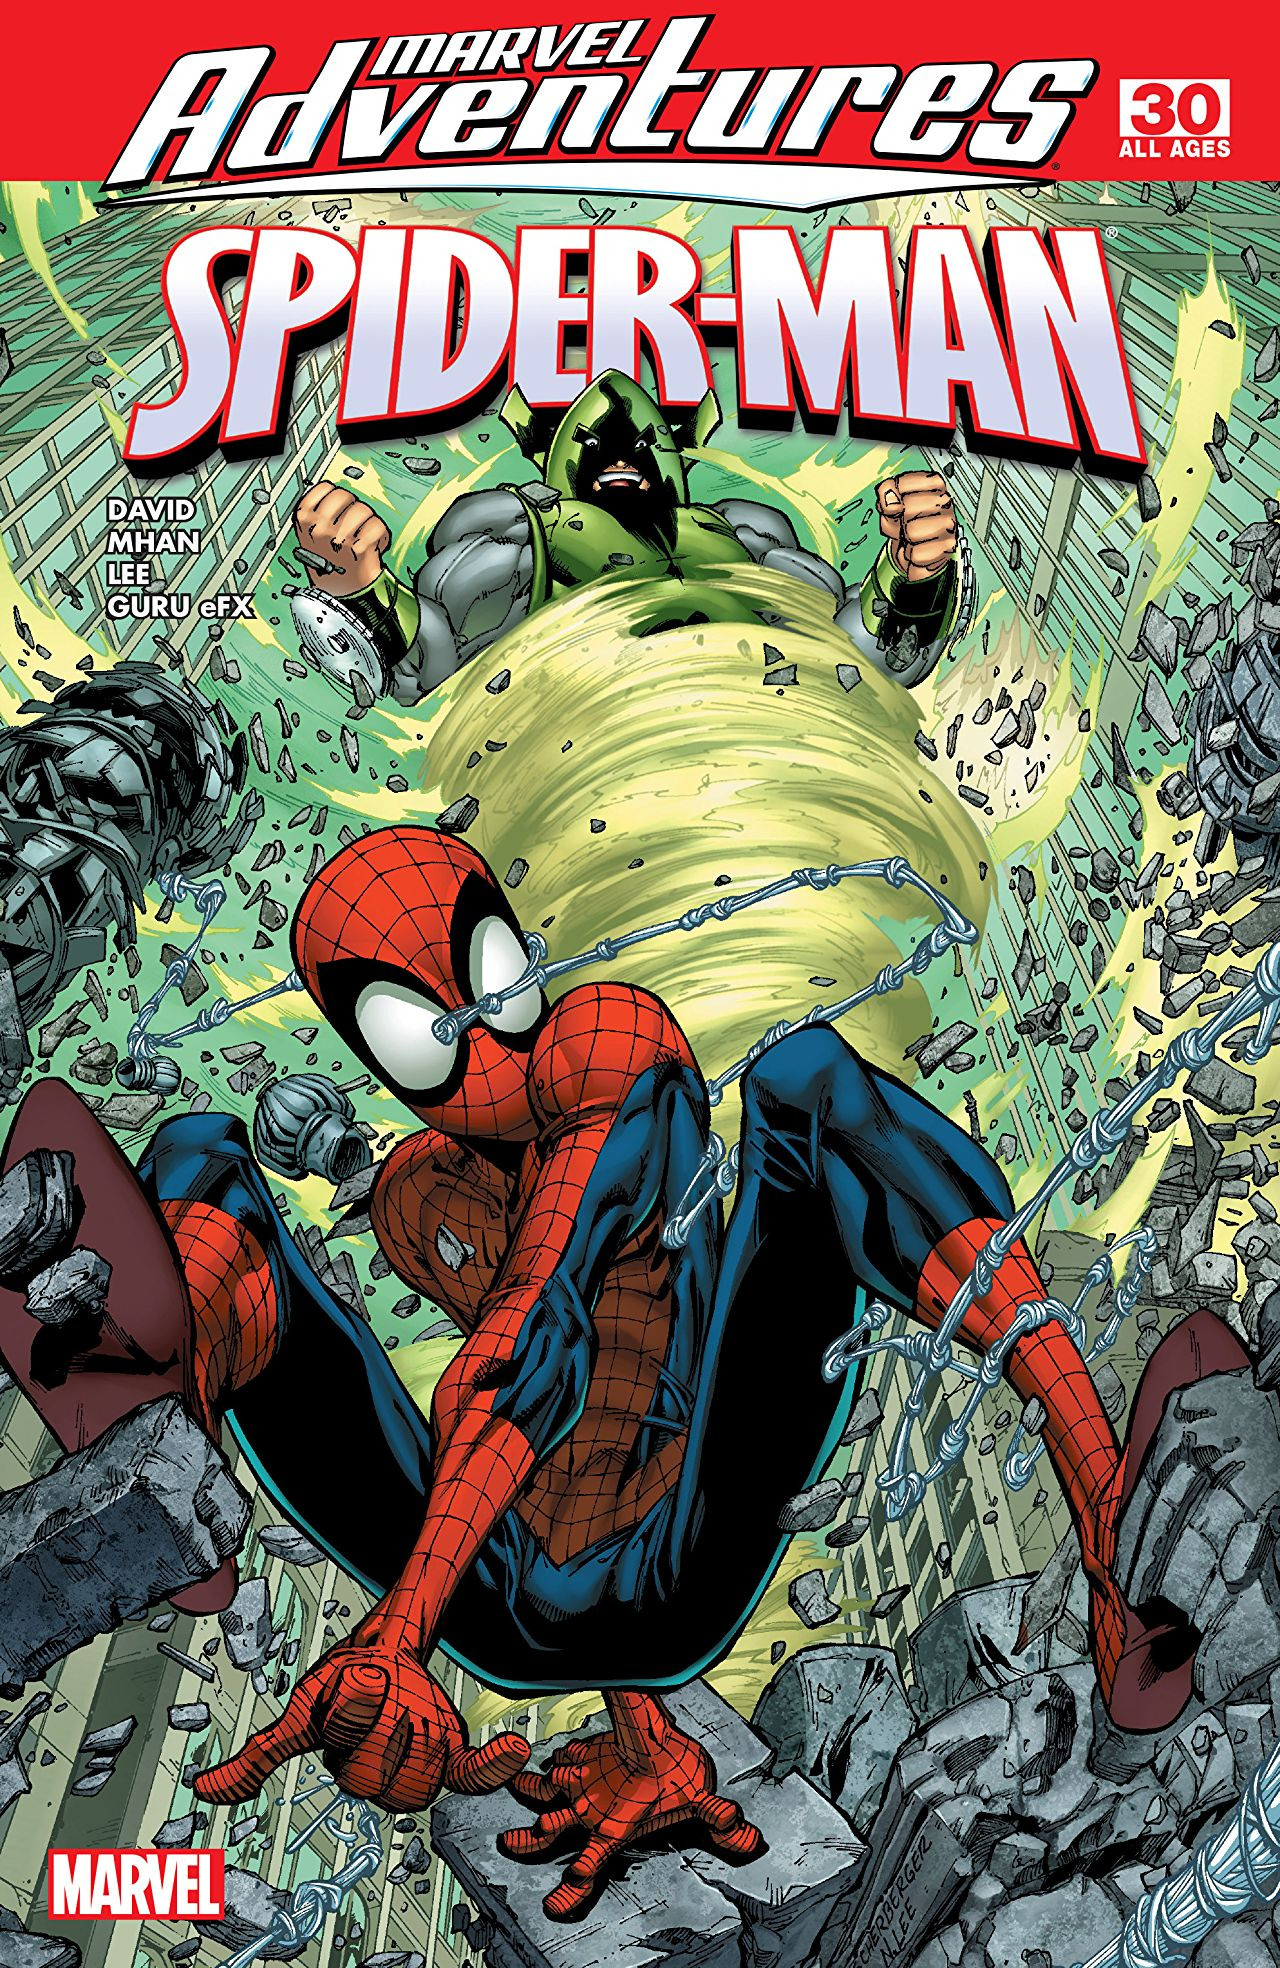 Marvel Adventures: Spider-Man Vol 1 30